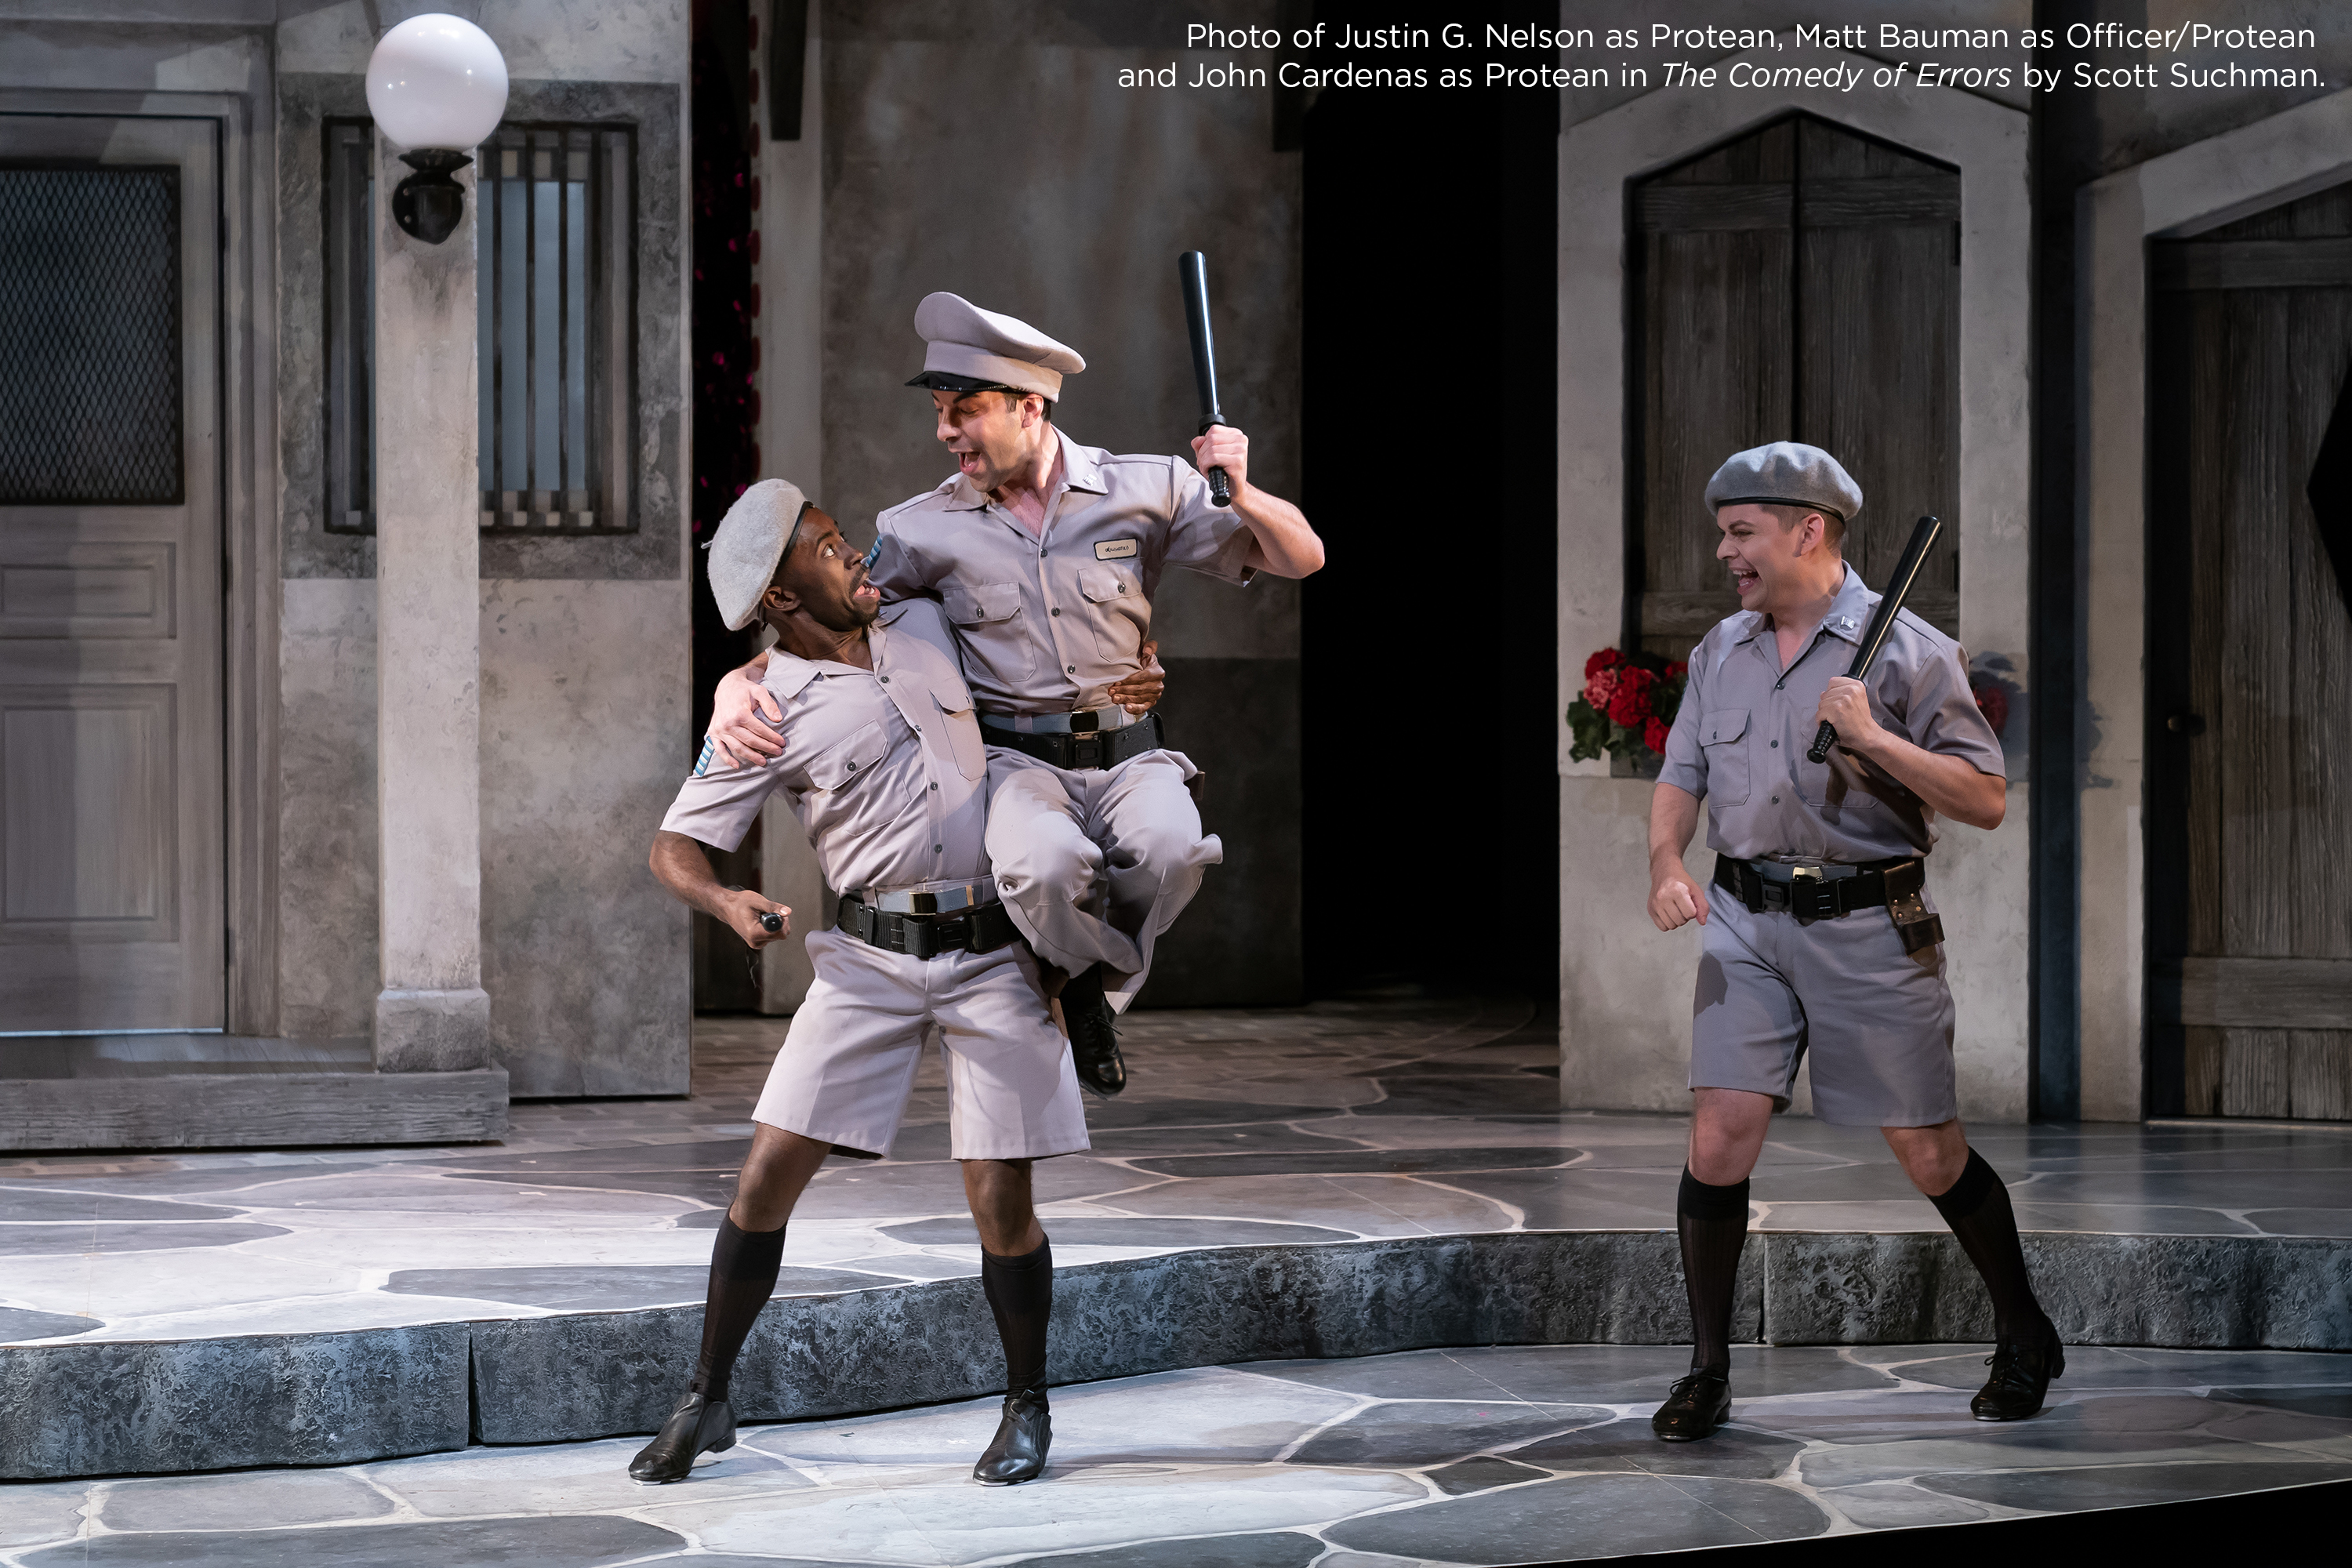 Photo of Justin G. Nelson as Protean, Matt Bauman as Officer/Protean and John Cardenas as Protean in The Comedy of Errors by Scott Suchman.